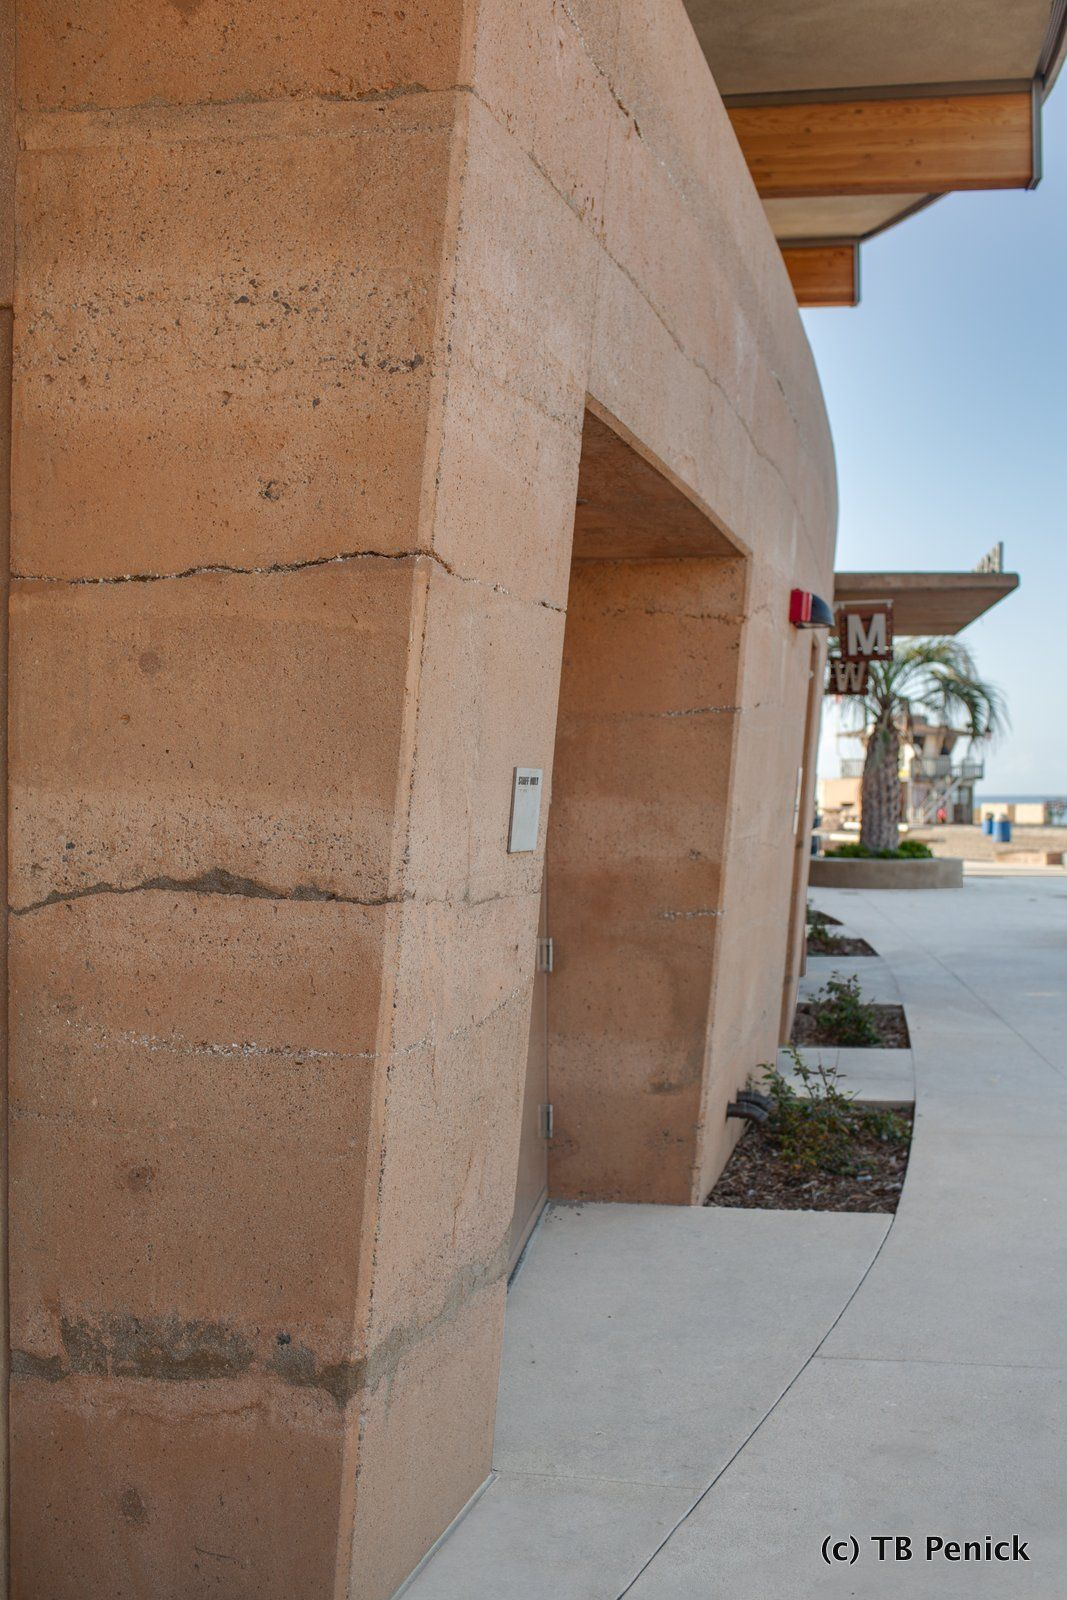 Decorative Concrete Sedimentary Walls Installed By Dcc Member Tb Penick At Moonlight Beach In California Exterior Decorative Concrete Decor Concrete